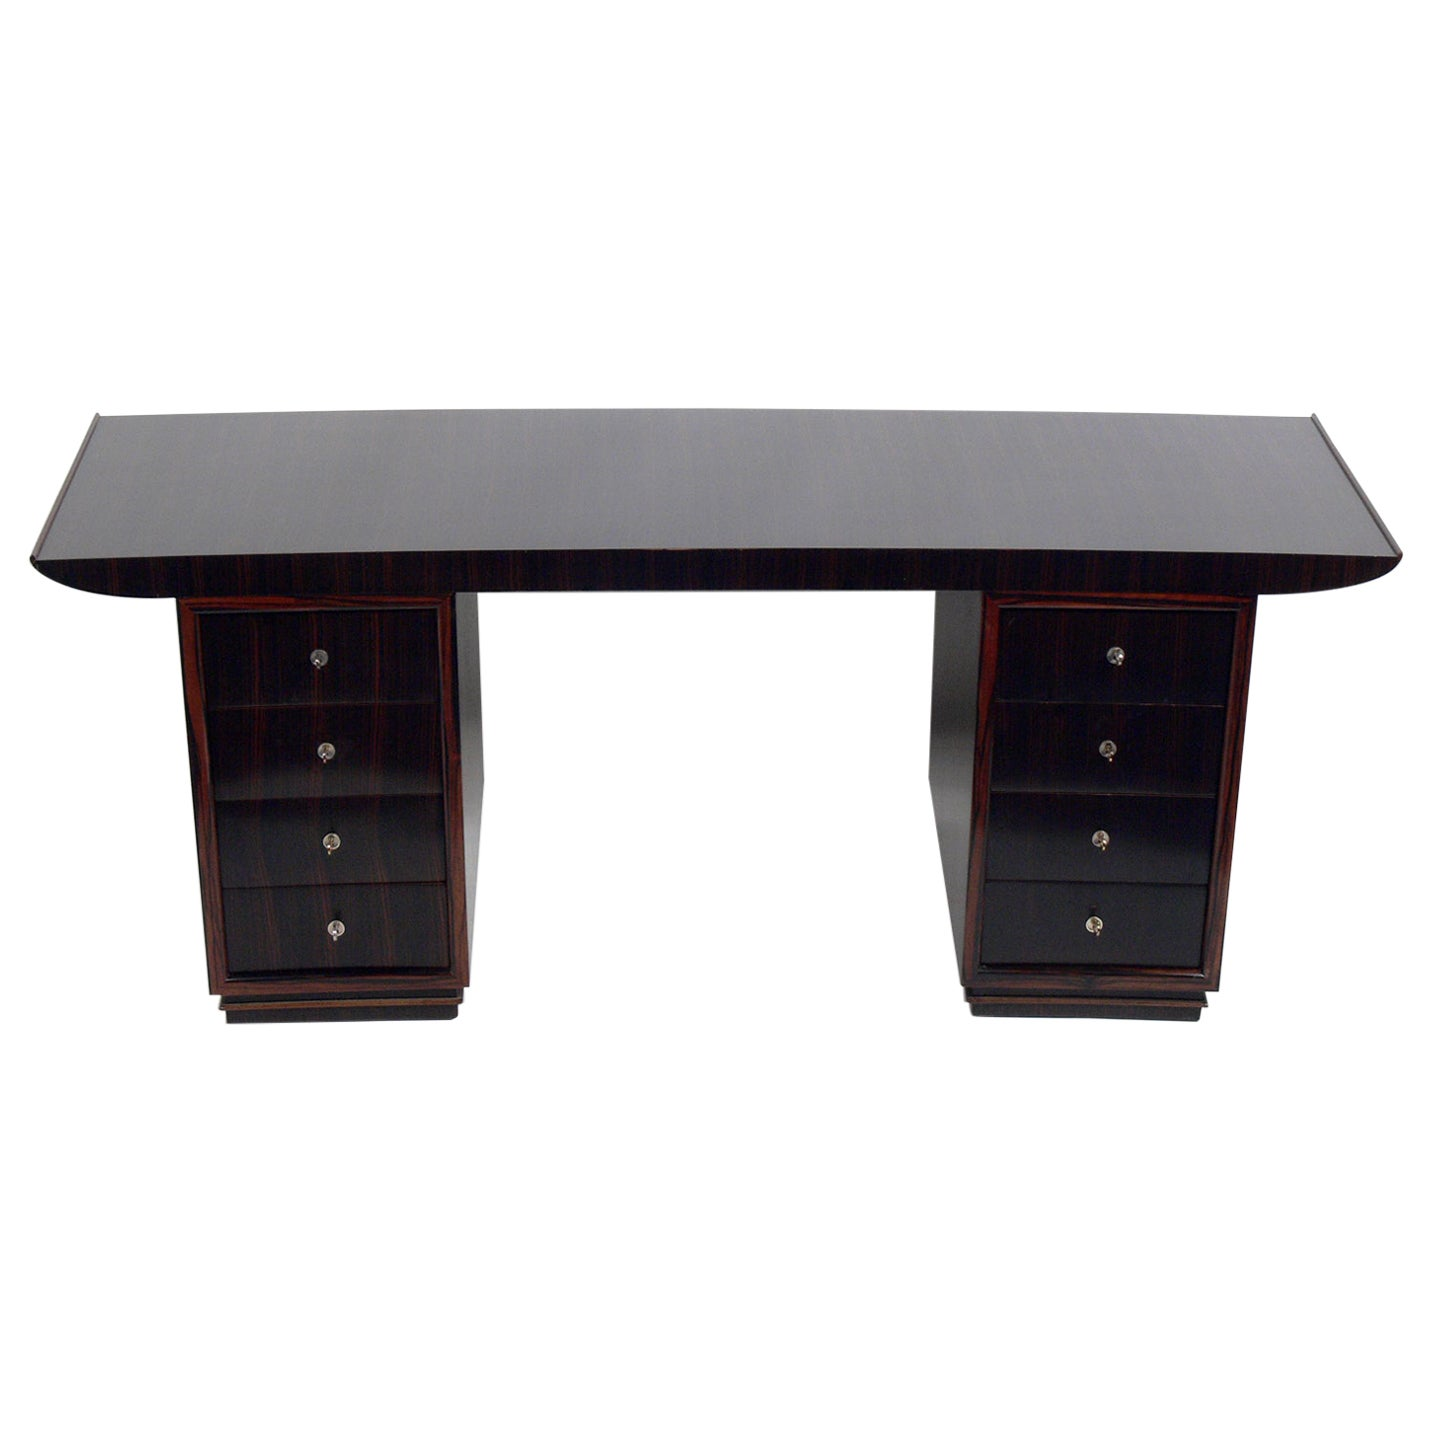 French Art Deco Macassar Desk by Dominique